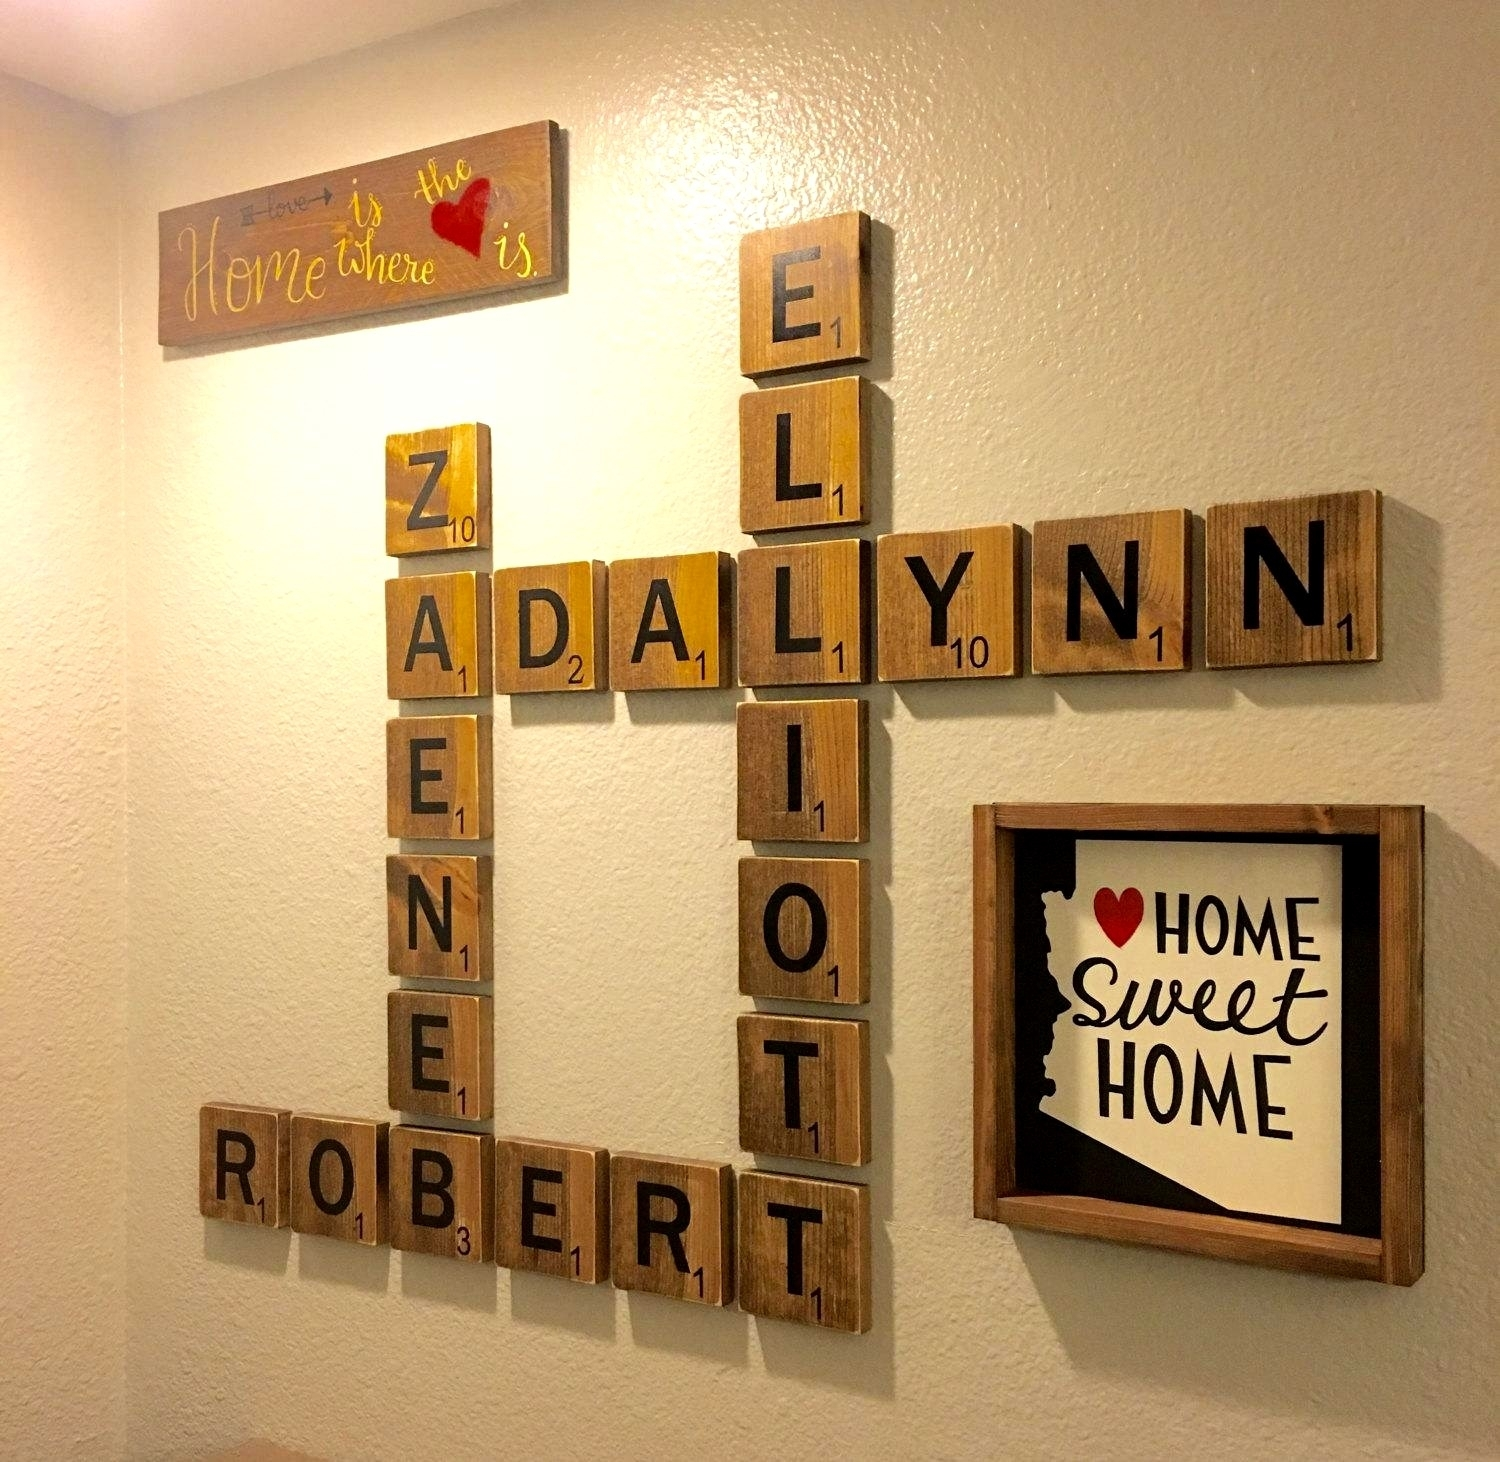 25 Layout Scrabble Tiles Wall Art For Most Up To Date Scrabble Wall Art (View 9 of 20)